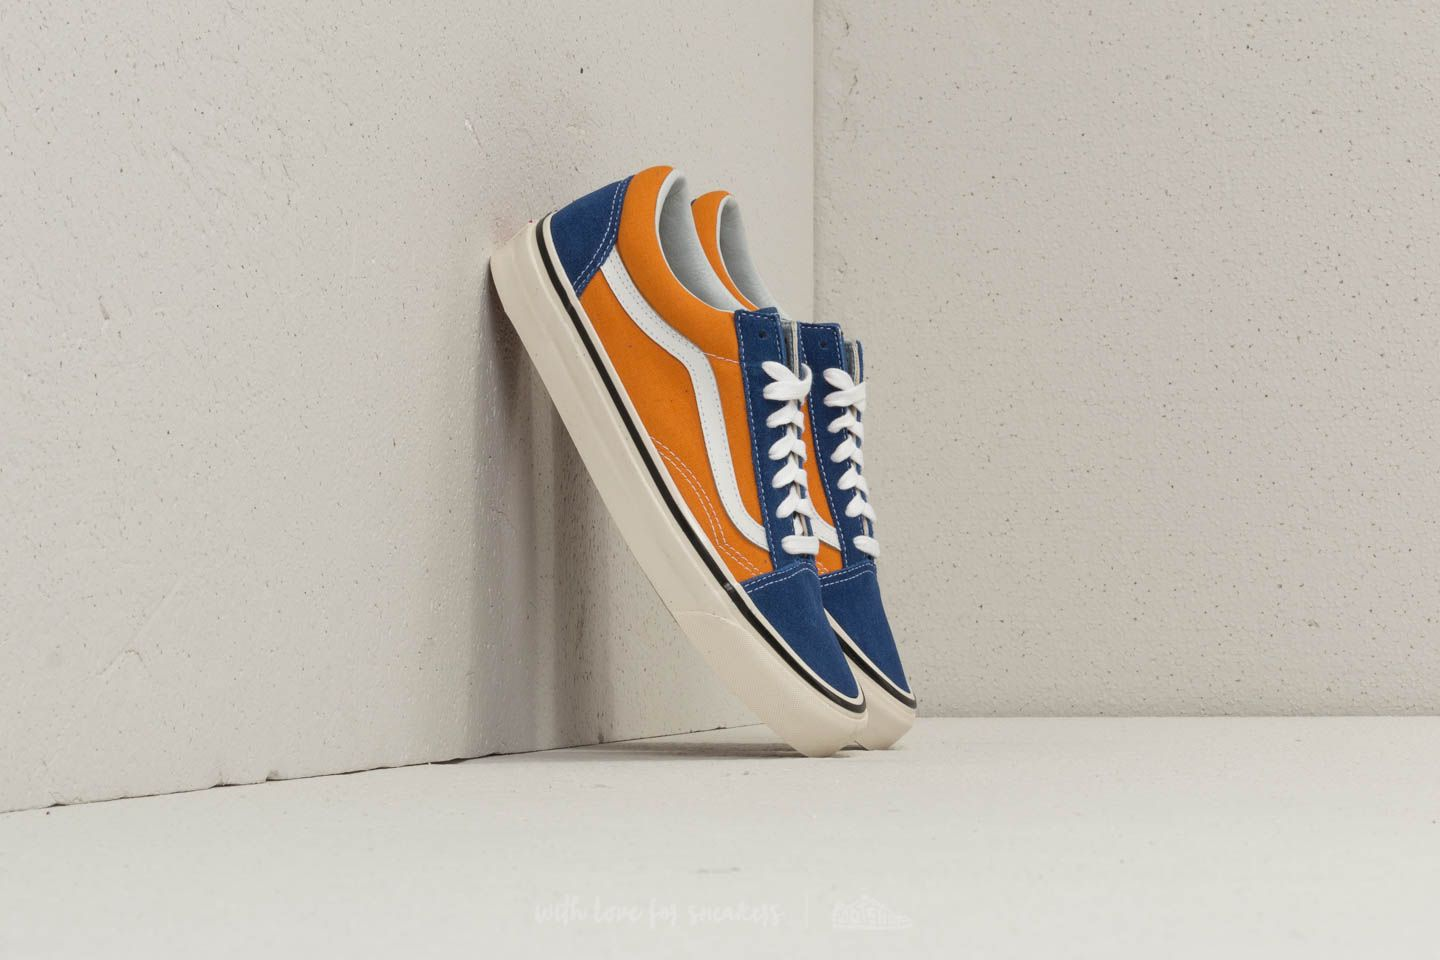 905cb655234b Vans Old Skool 36 DX (Anaheim Factory) OG Blue